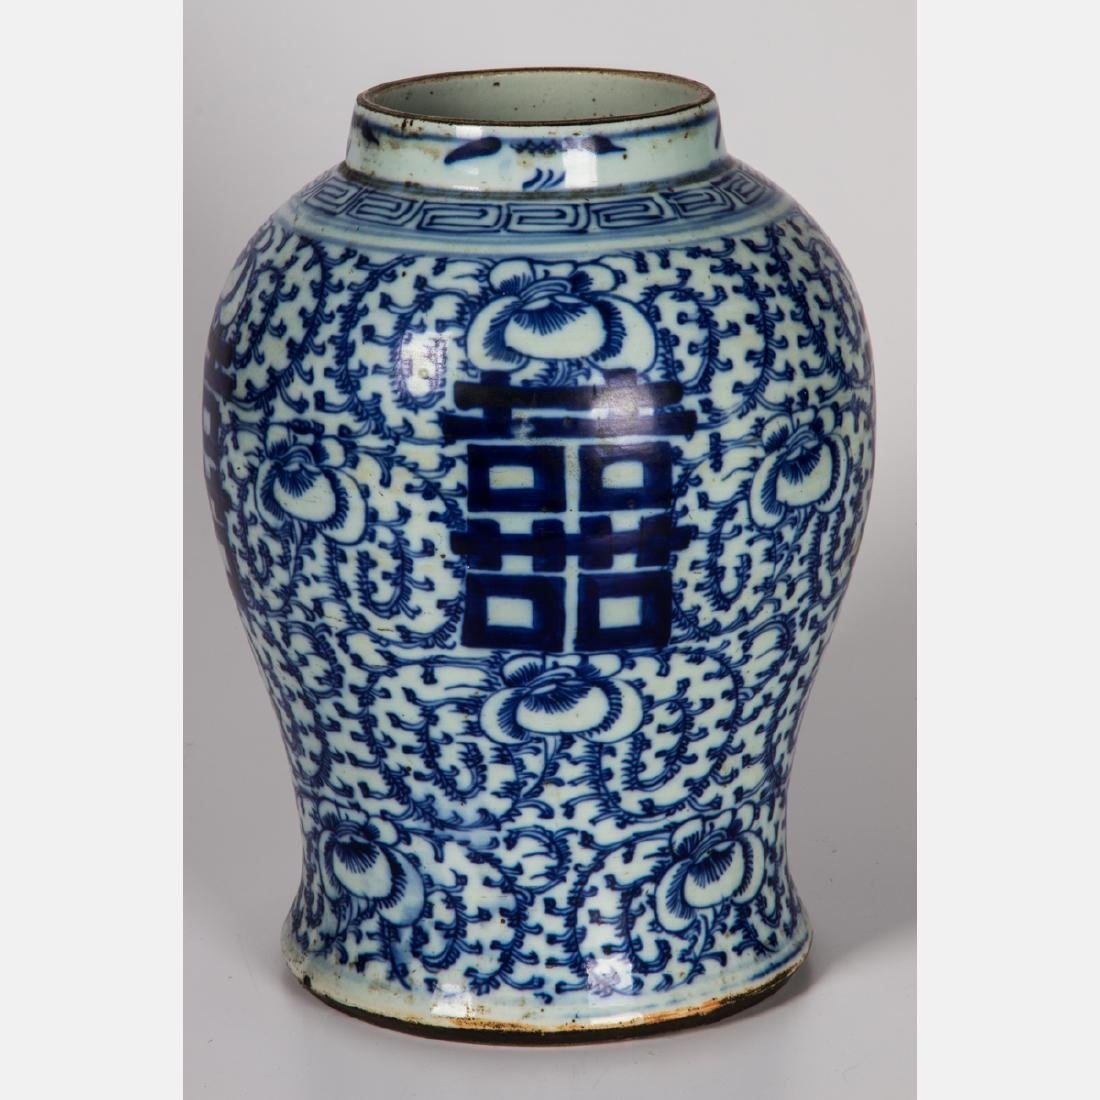 A Chinese Blue and White Porcelain Storage Jar, 20th